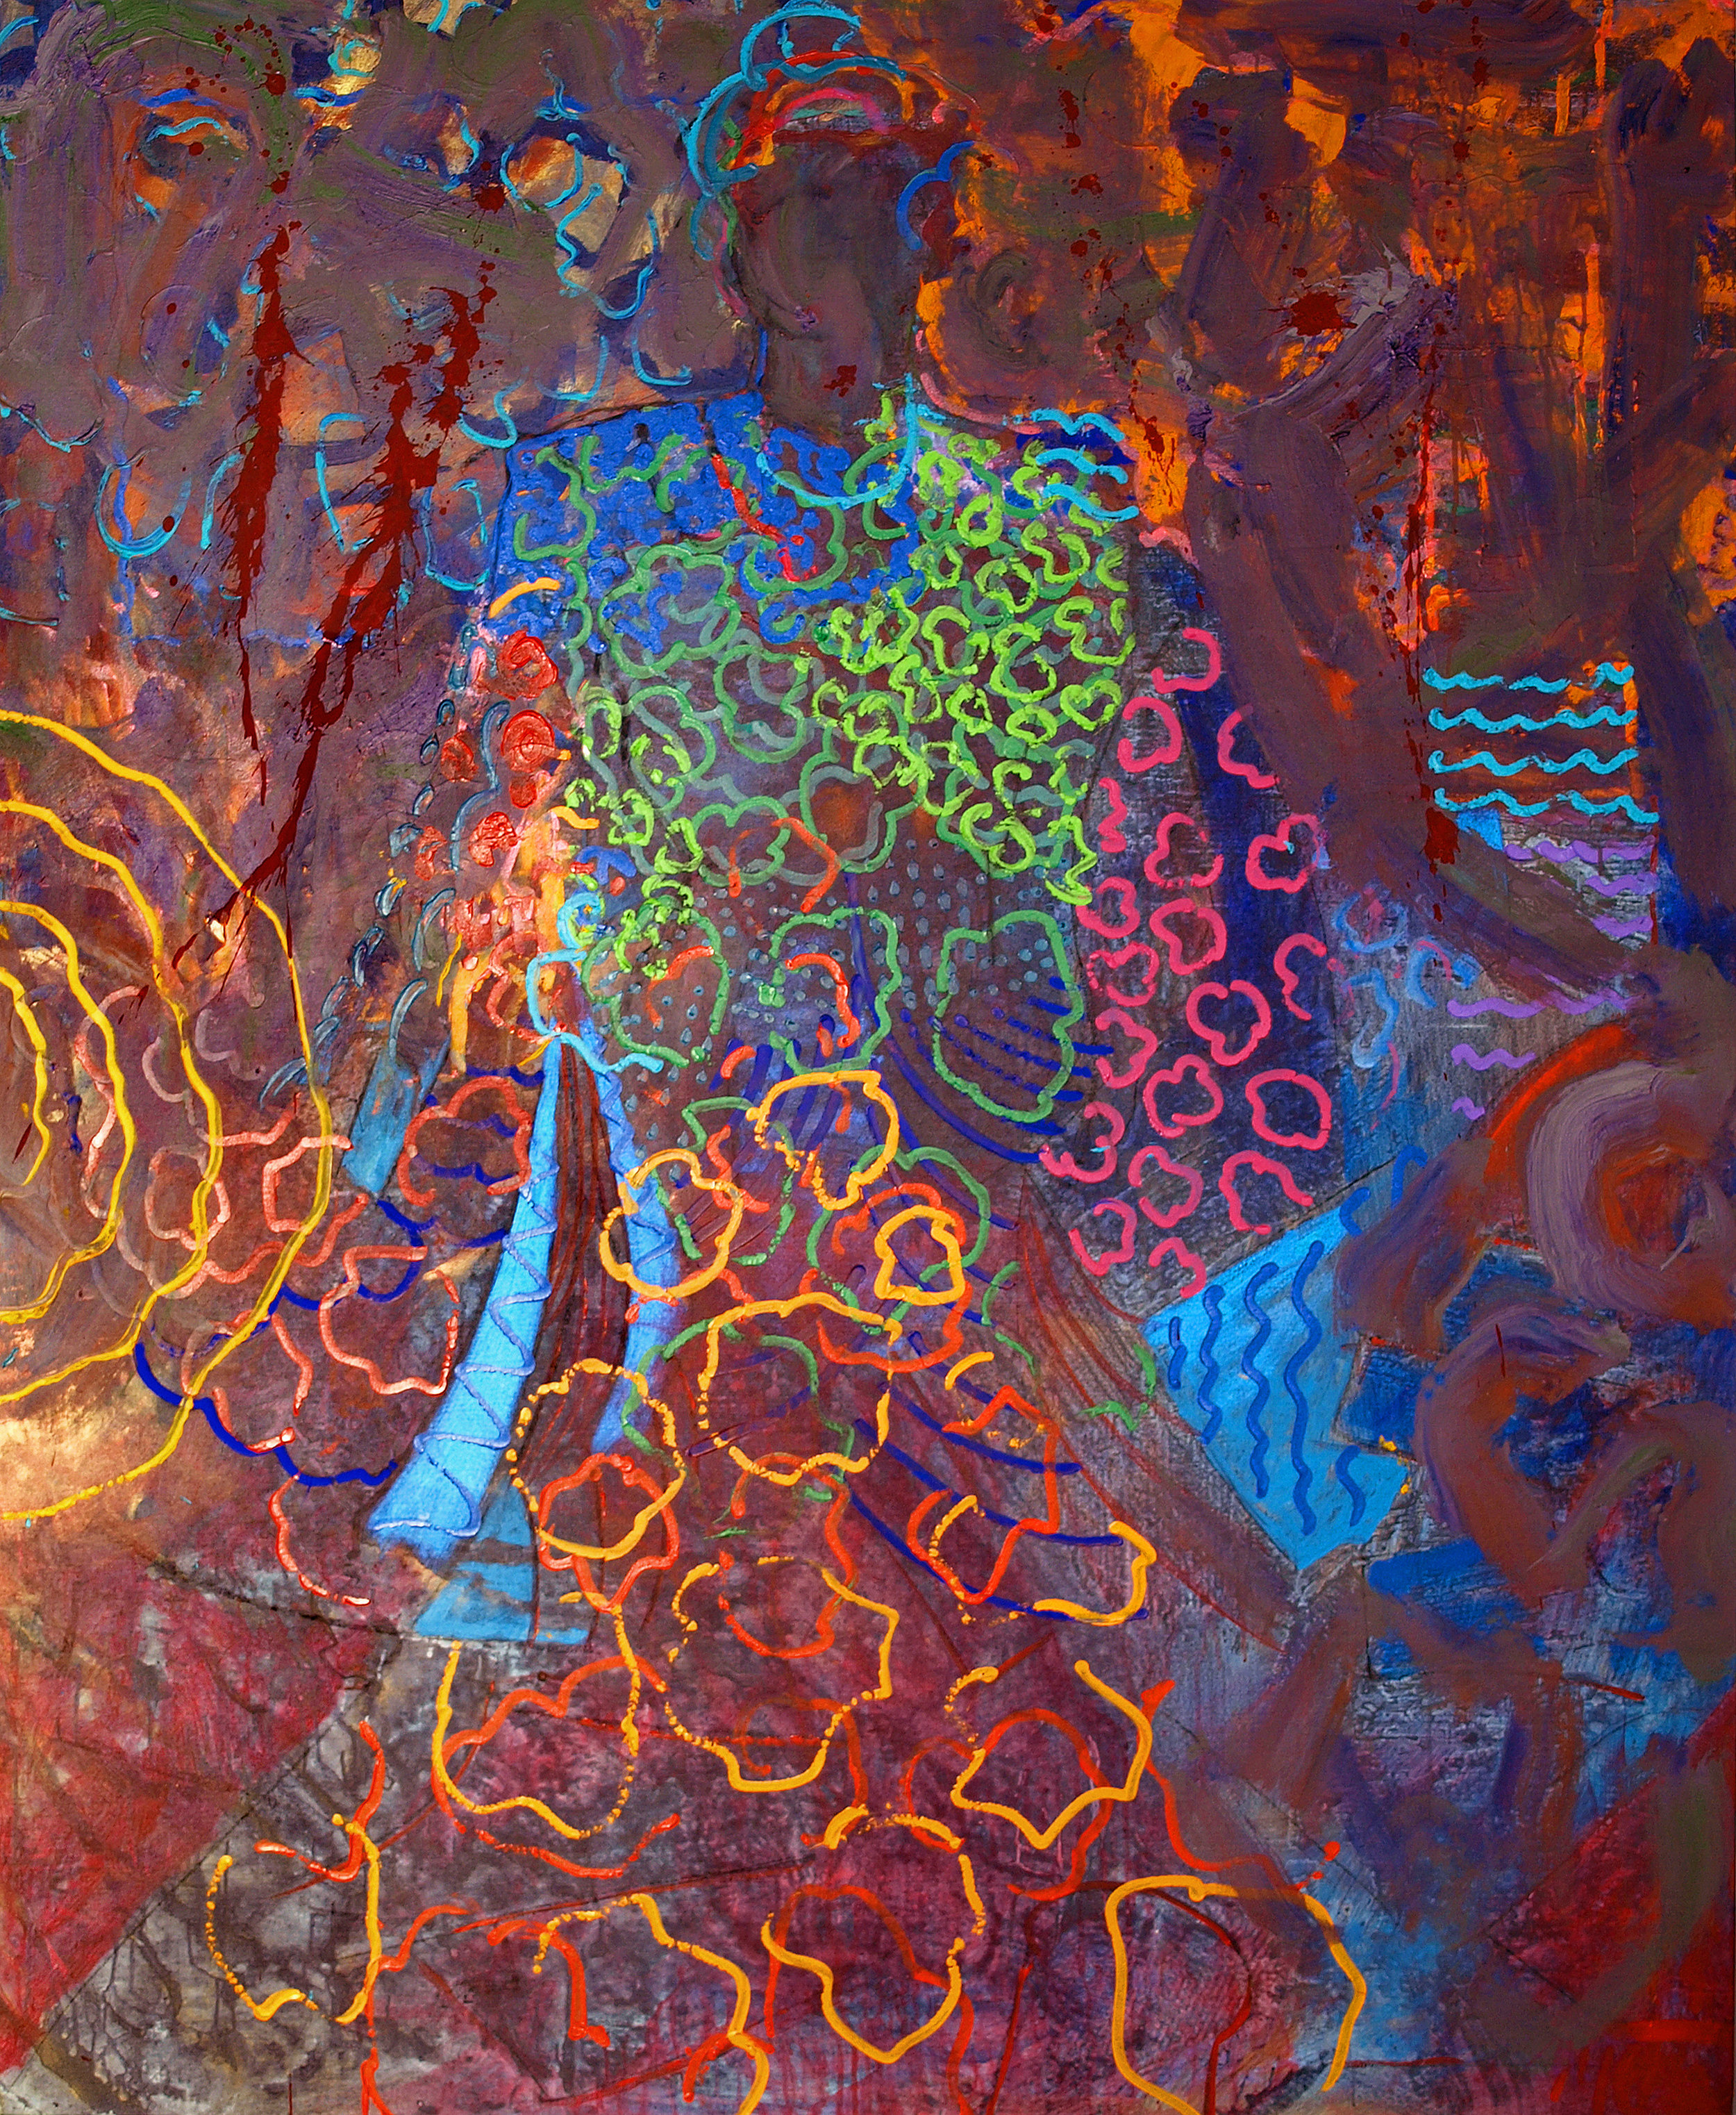 Indigo (Haiku Series), 2005, 62 x 76 inches, Acrylic on canvas